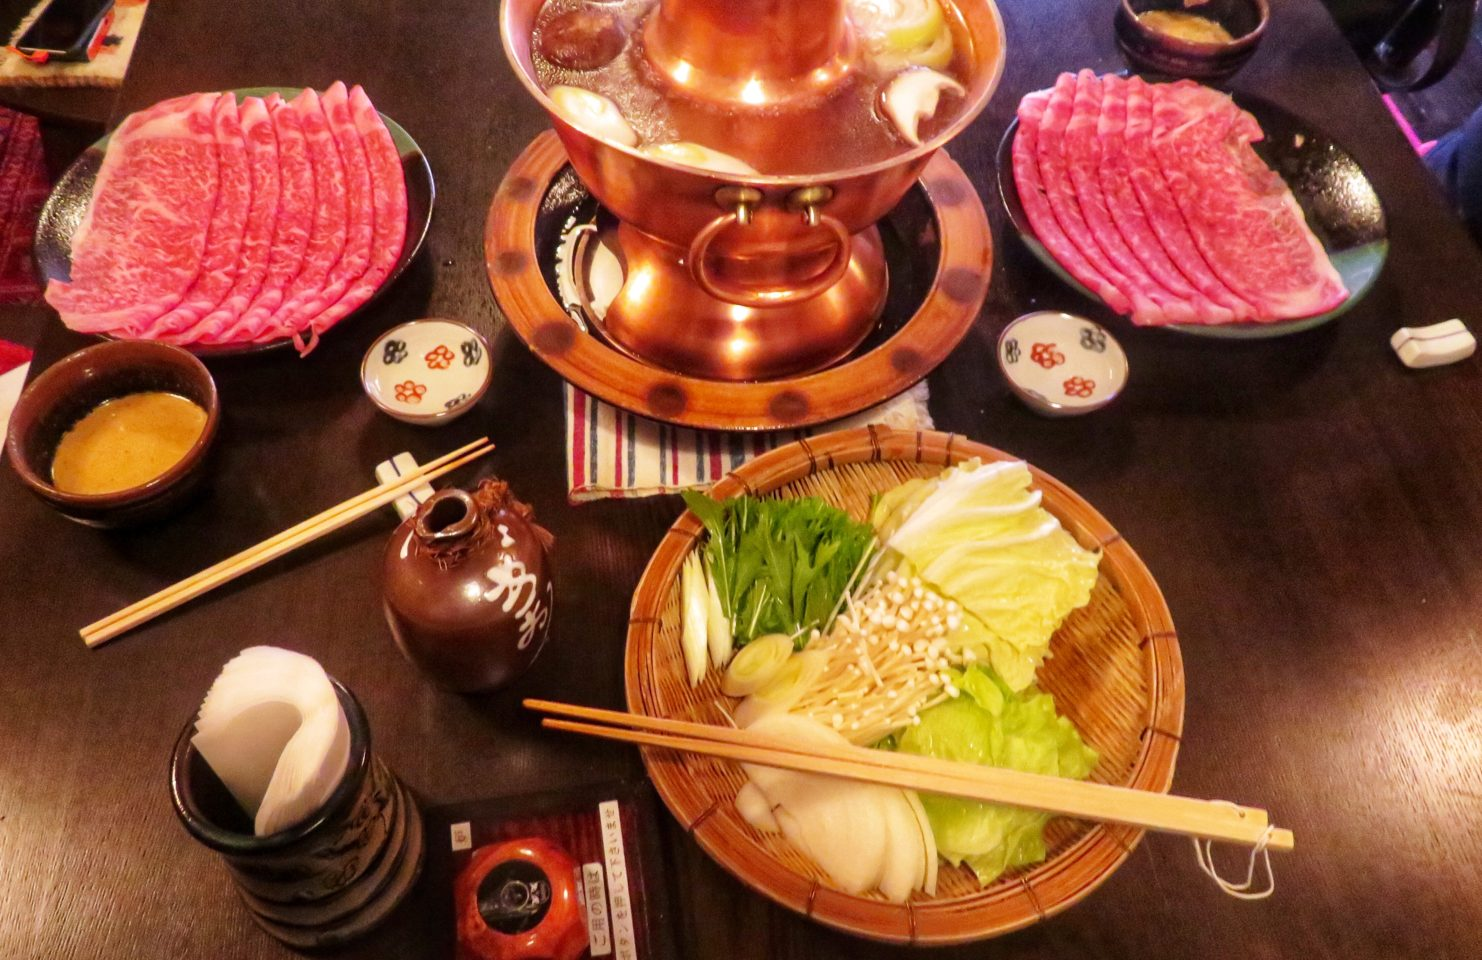 Japan Culinary Experiences ~ Shabu-Shabu at Junidanya Restaurant in Kyoto